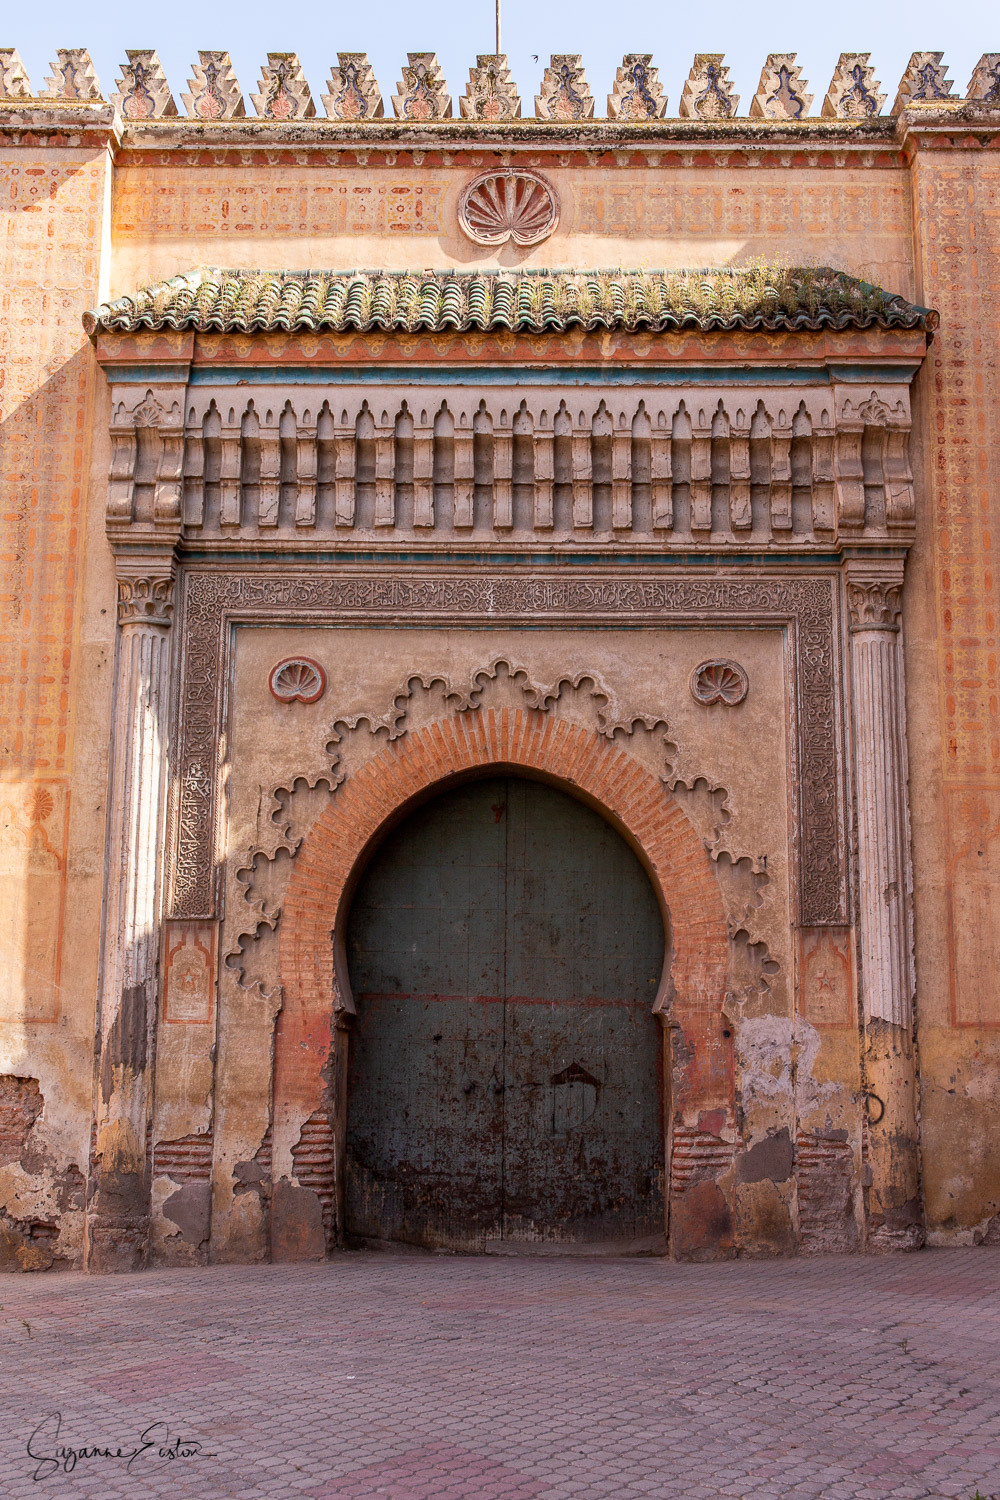 The ornate gateway to El Badi Palace in Marrakech